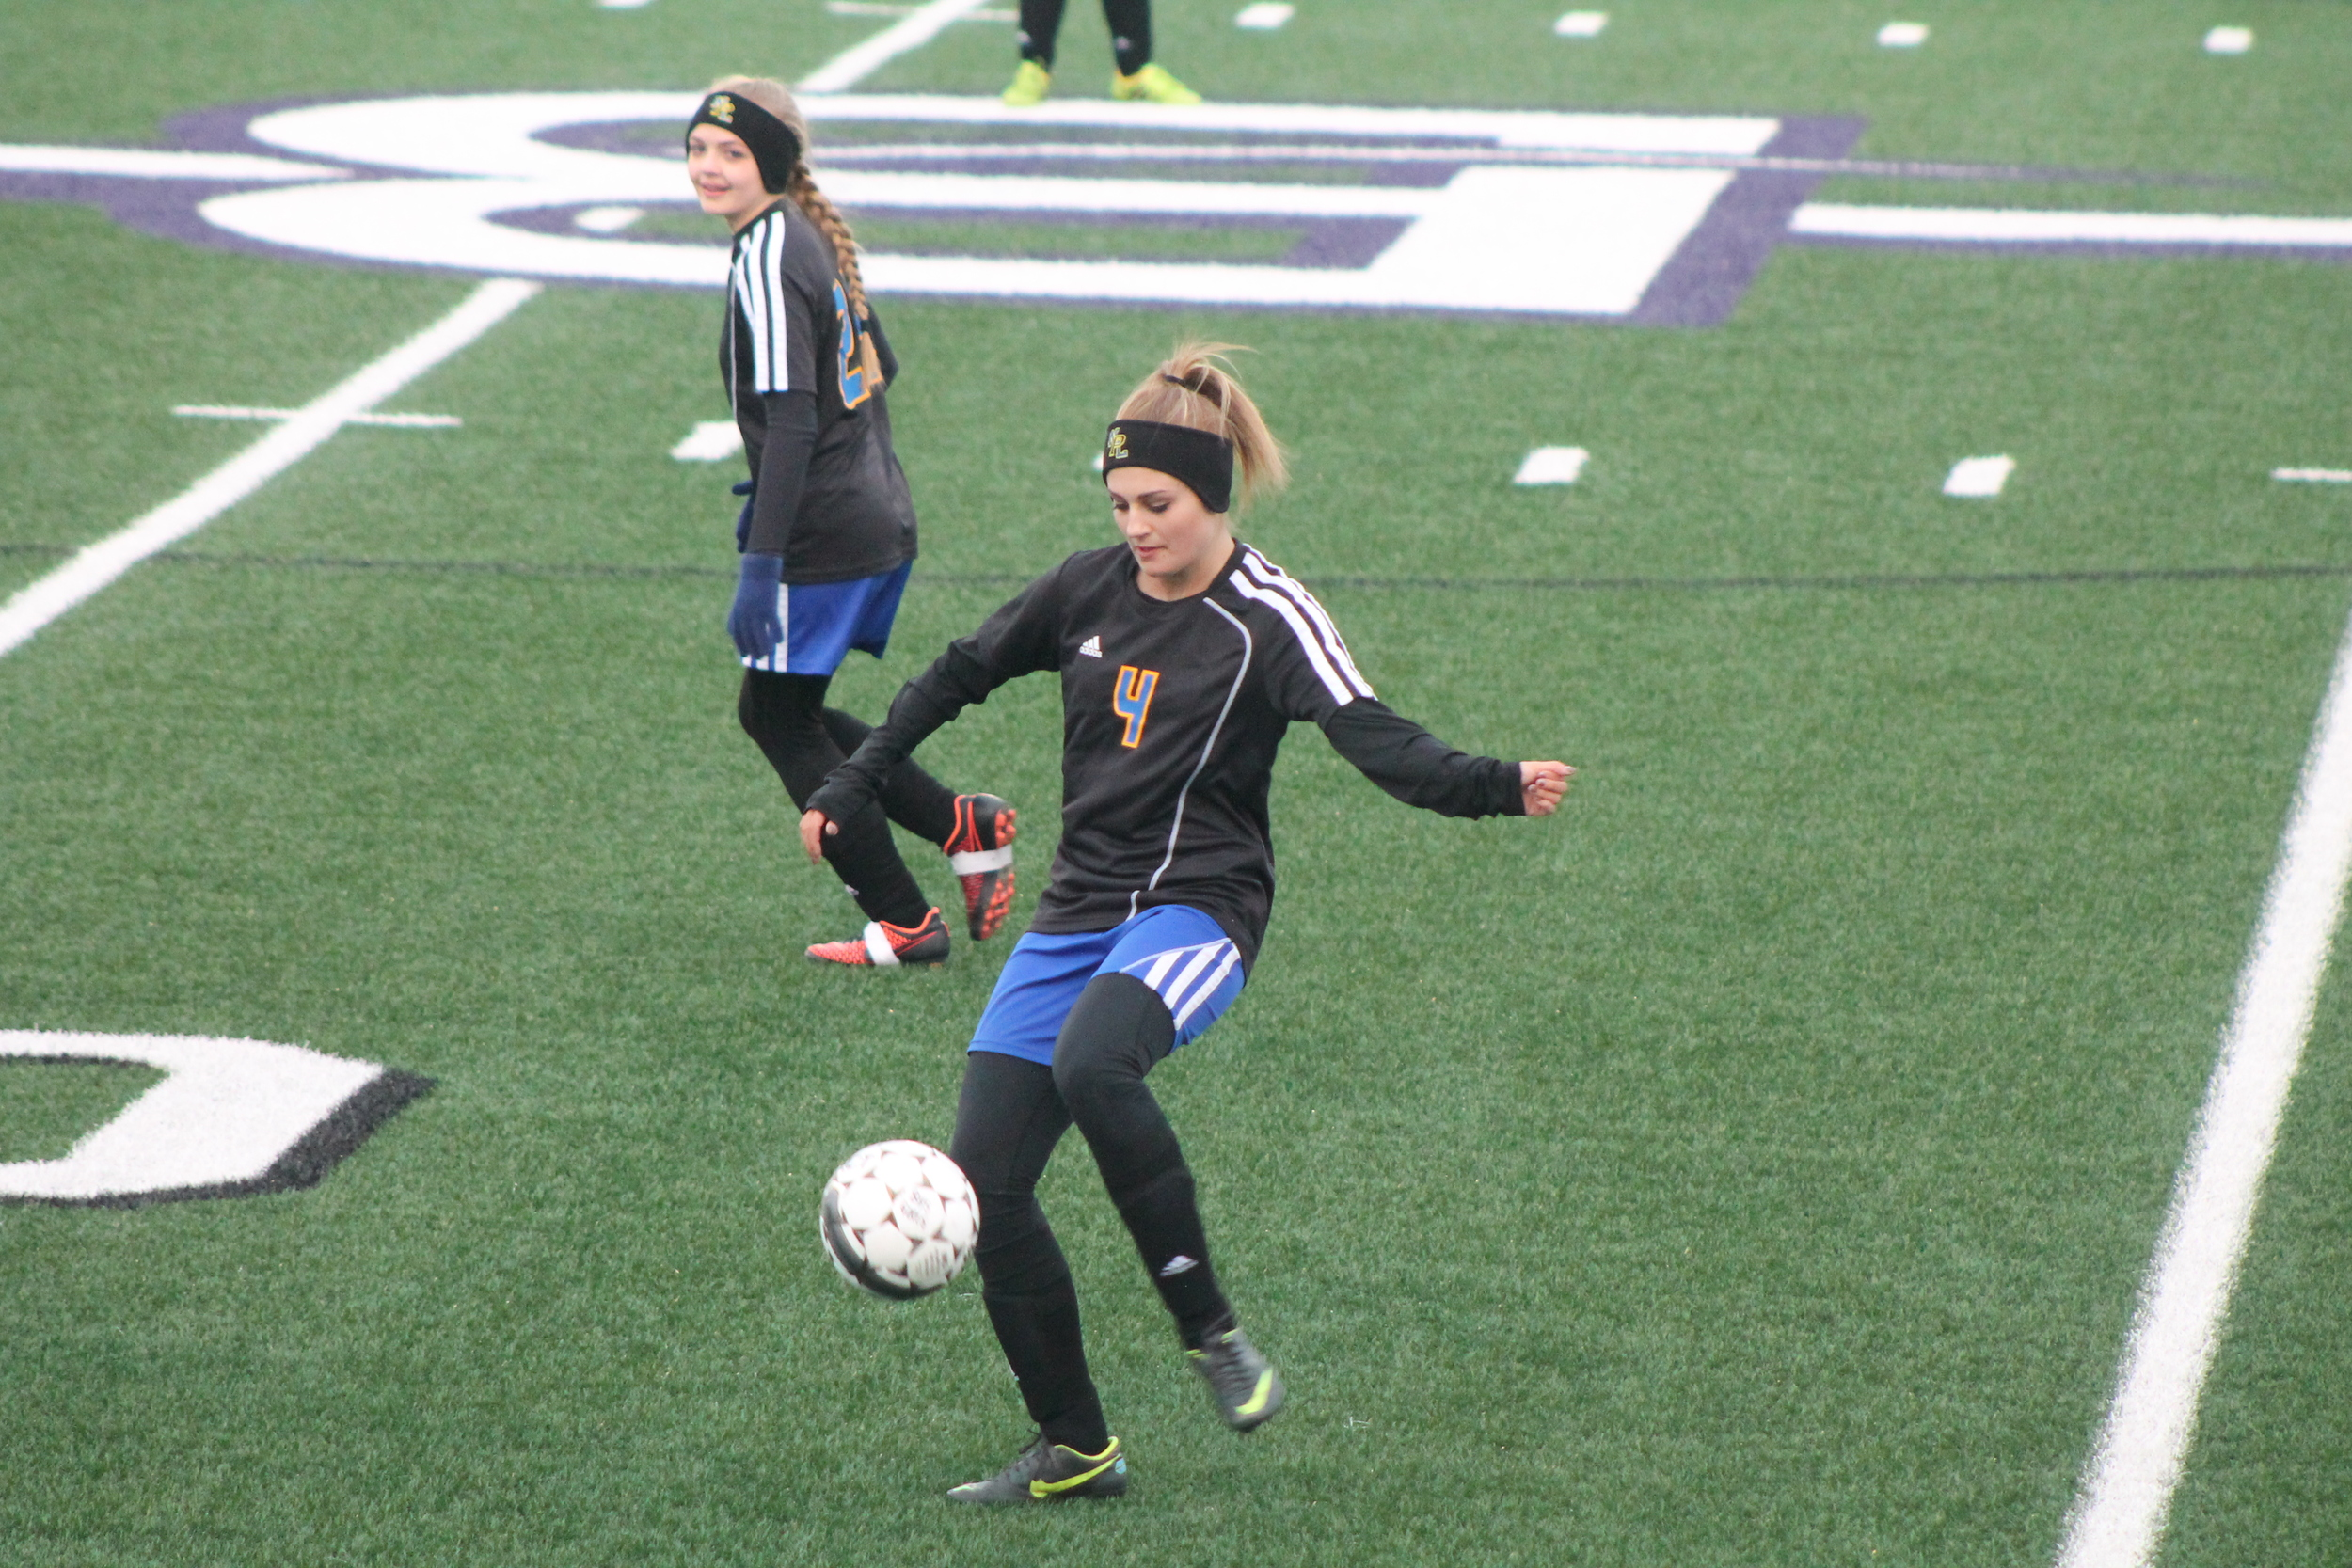 (Photo by Adam Routon) Abby Lacey controlling the ball for the Pantherettes against Bonham.